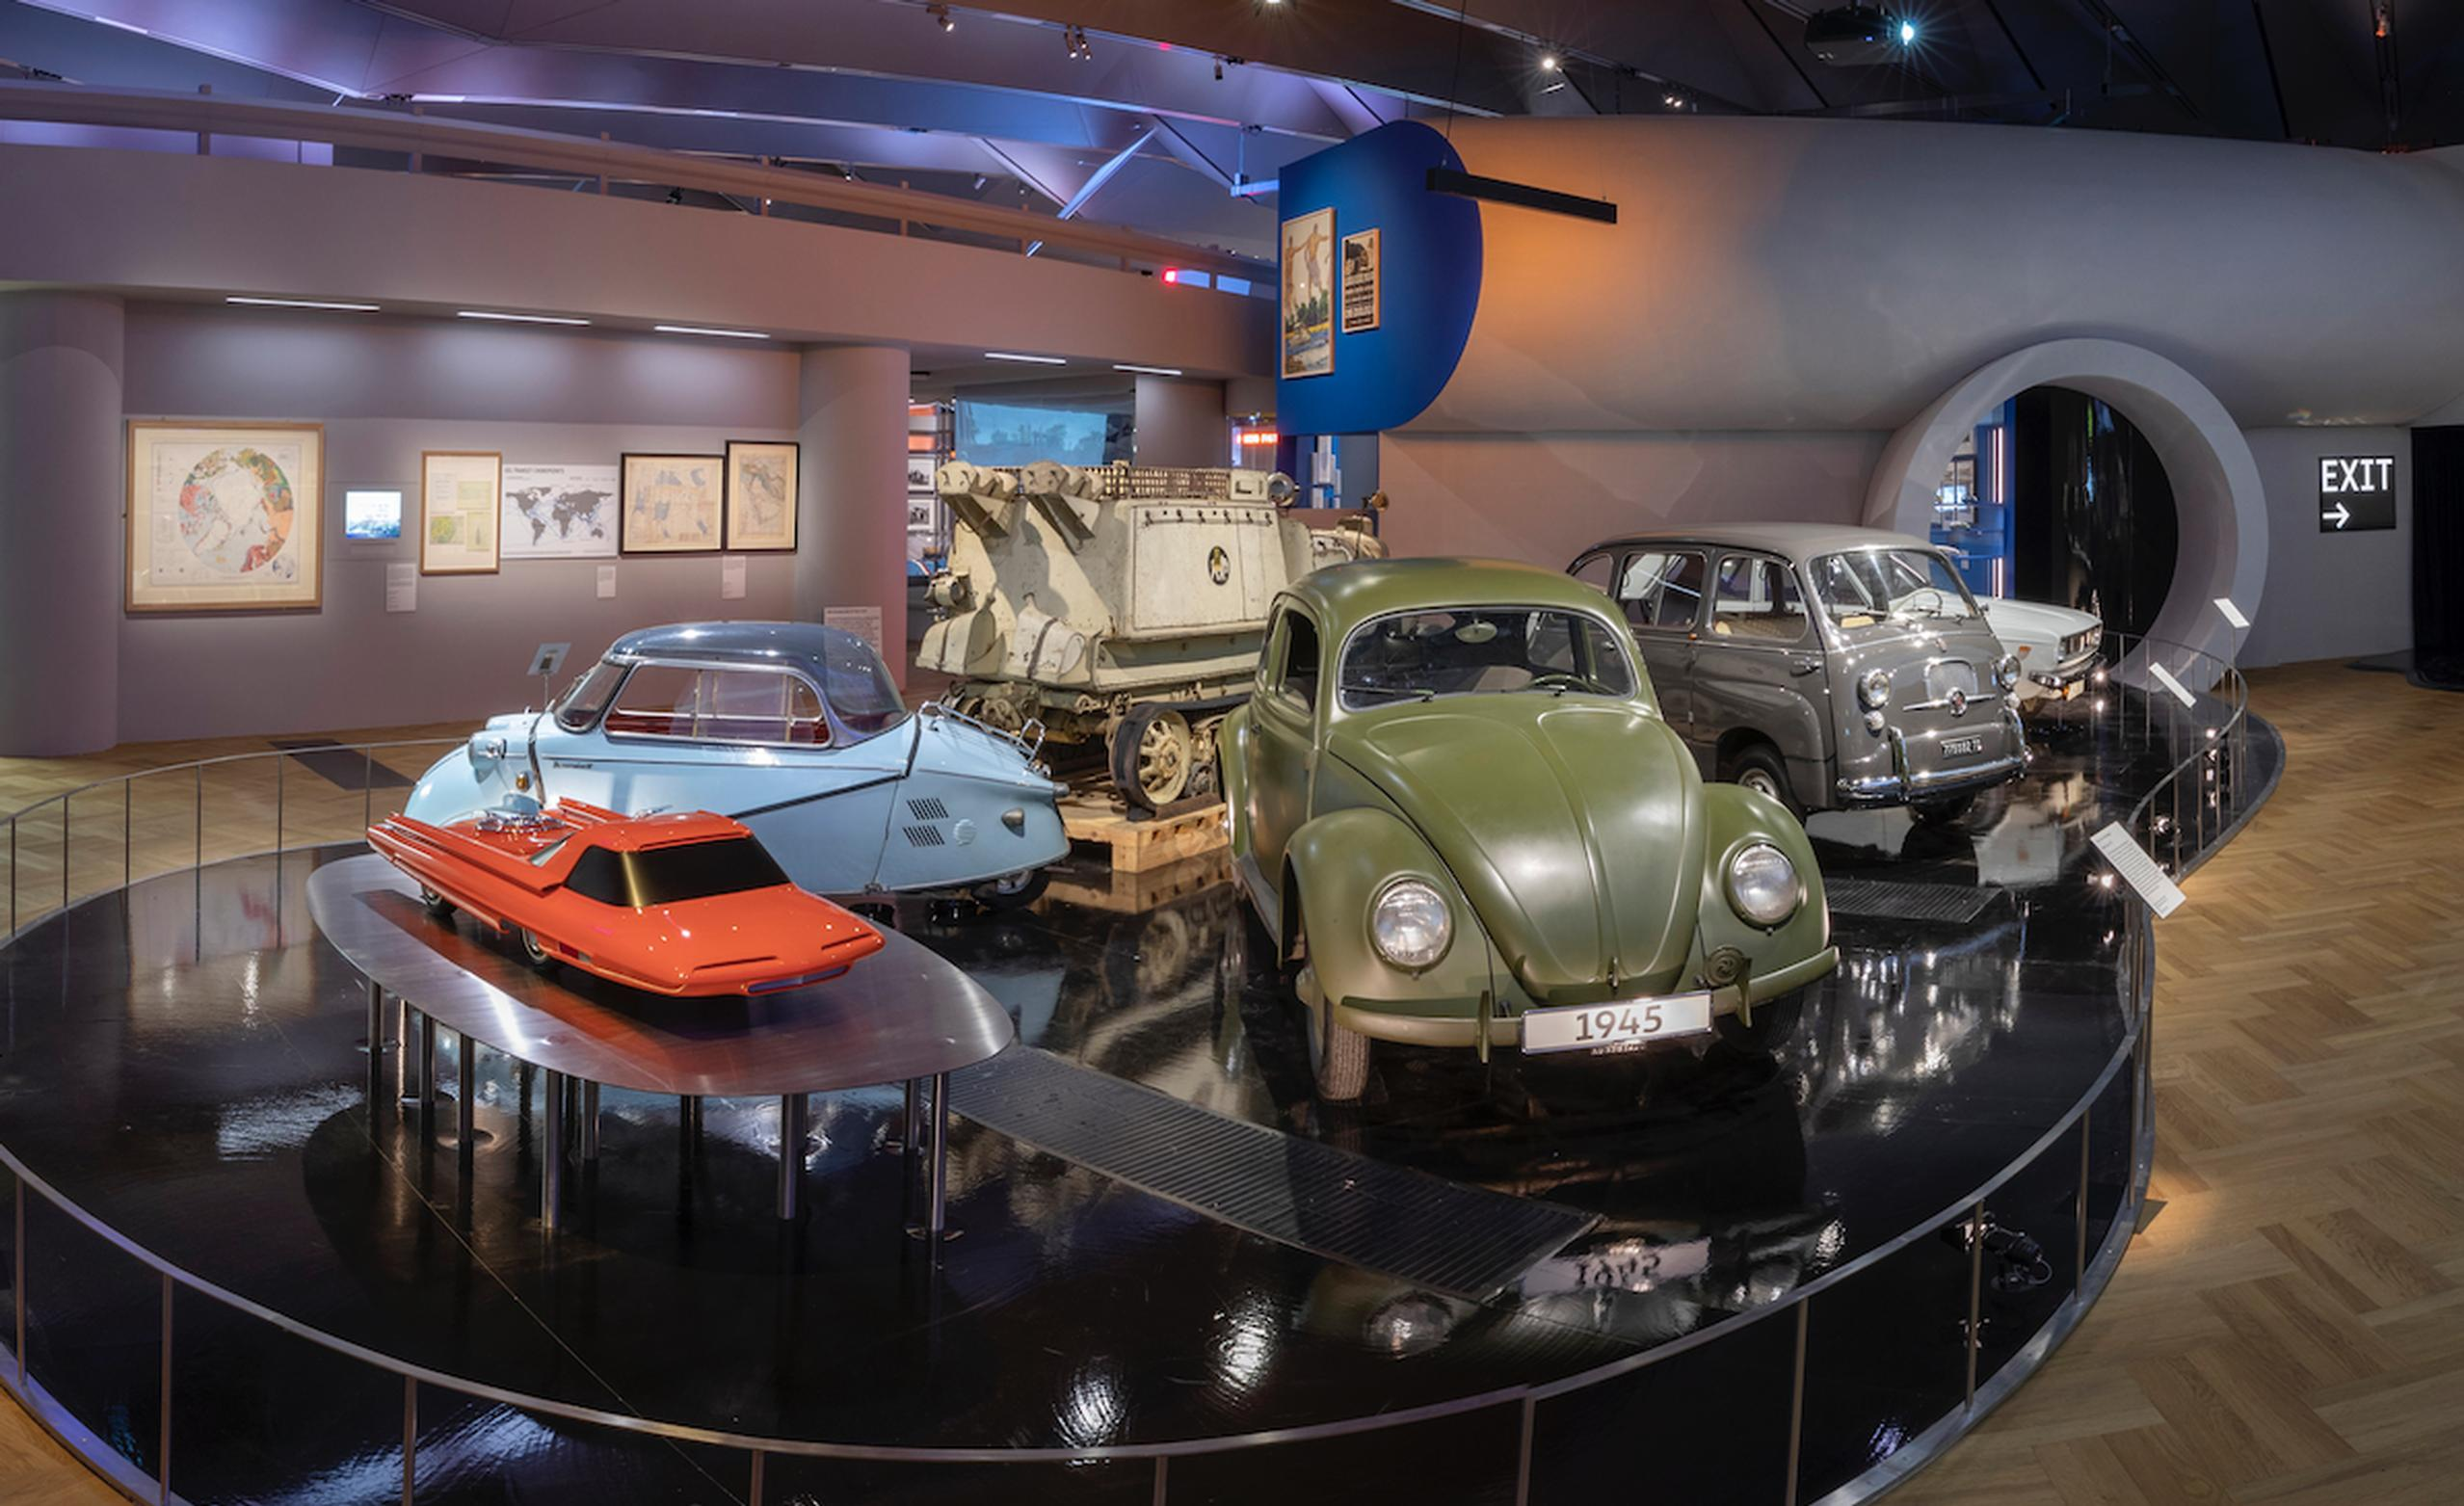 Cars: Accelerating the Modern World at the V&A